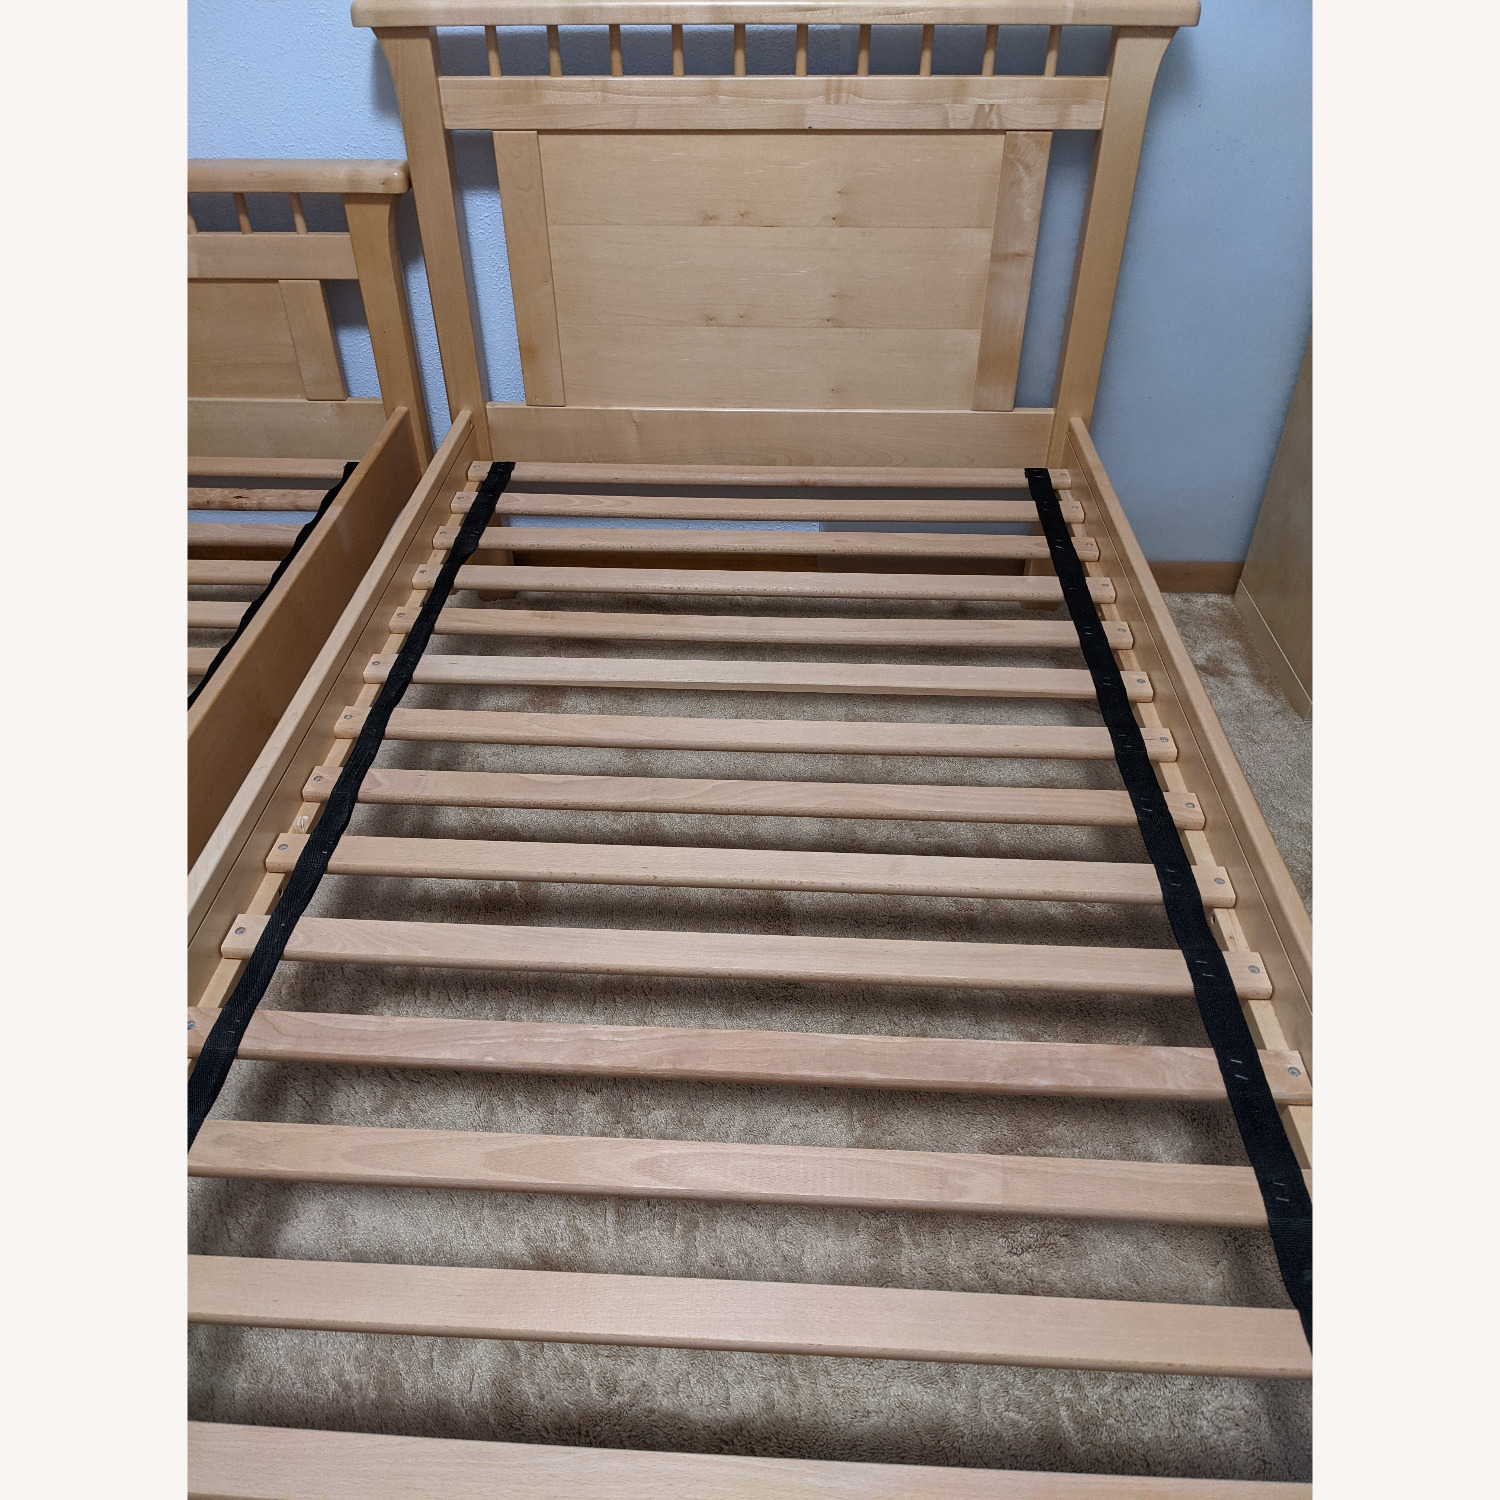 Solid Wood Bunk Beds w/ Under Bed Storage Drawers - image-8